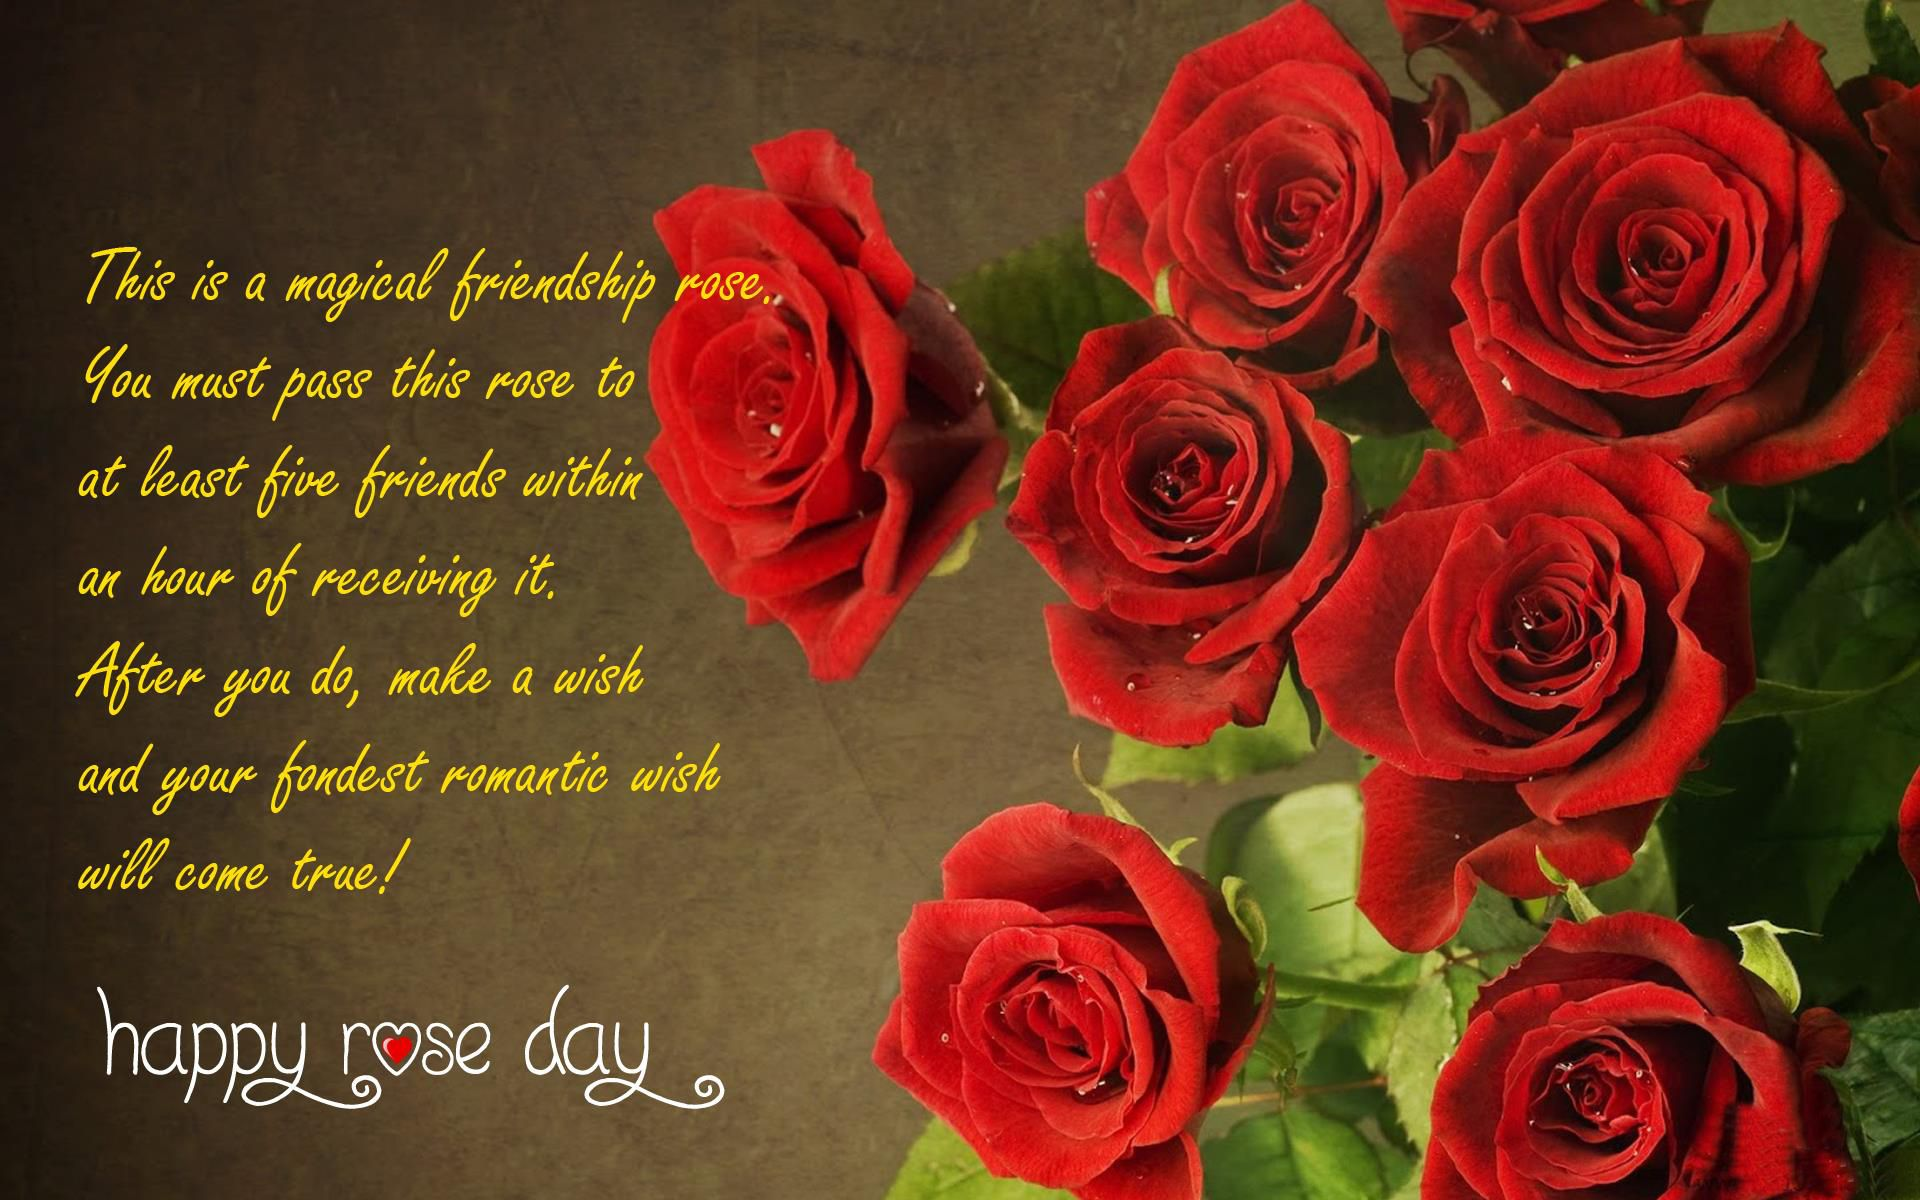 Rose Day Quotes For Friendship Rose Day Happy Happy Rose Day